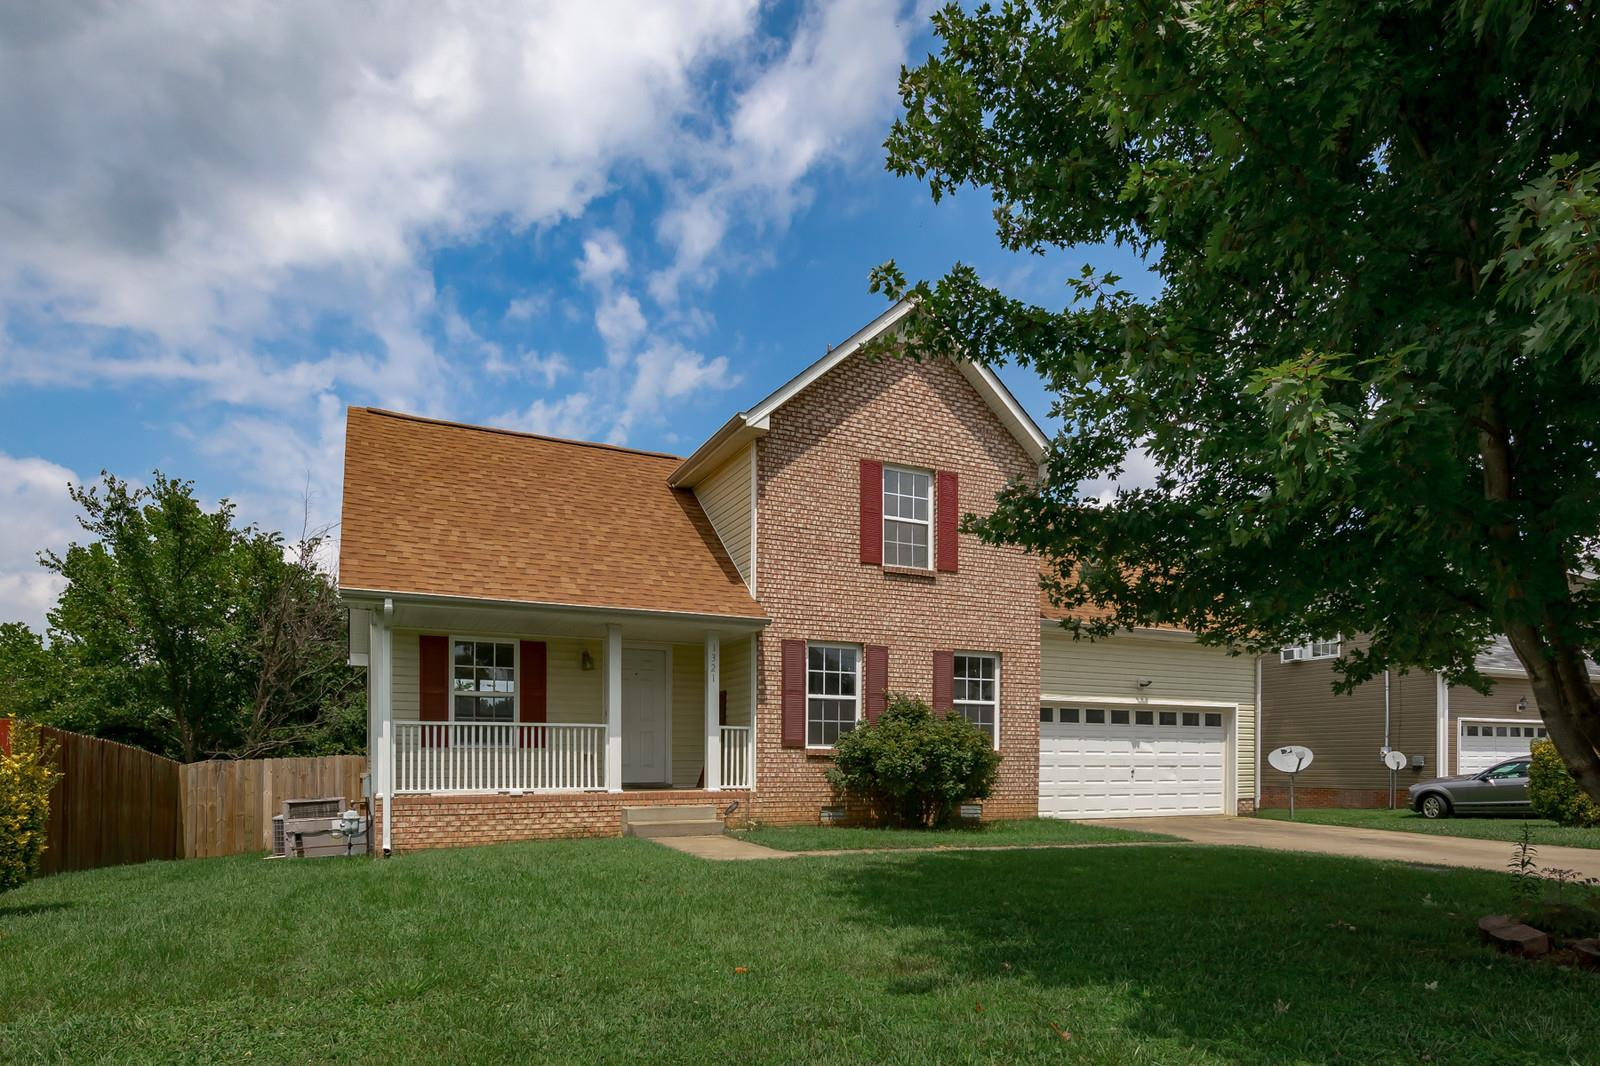 1321 Sunfield Dr, Clarksville, TN 37042 - Clarksville, TN real estate listing